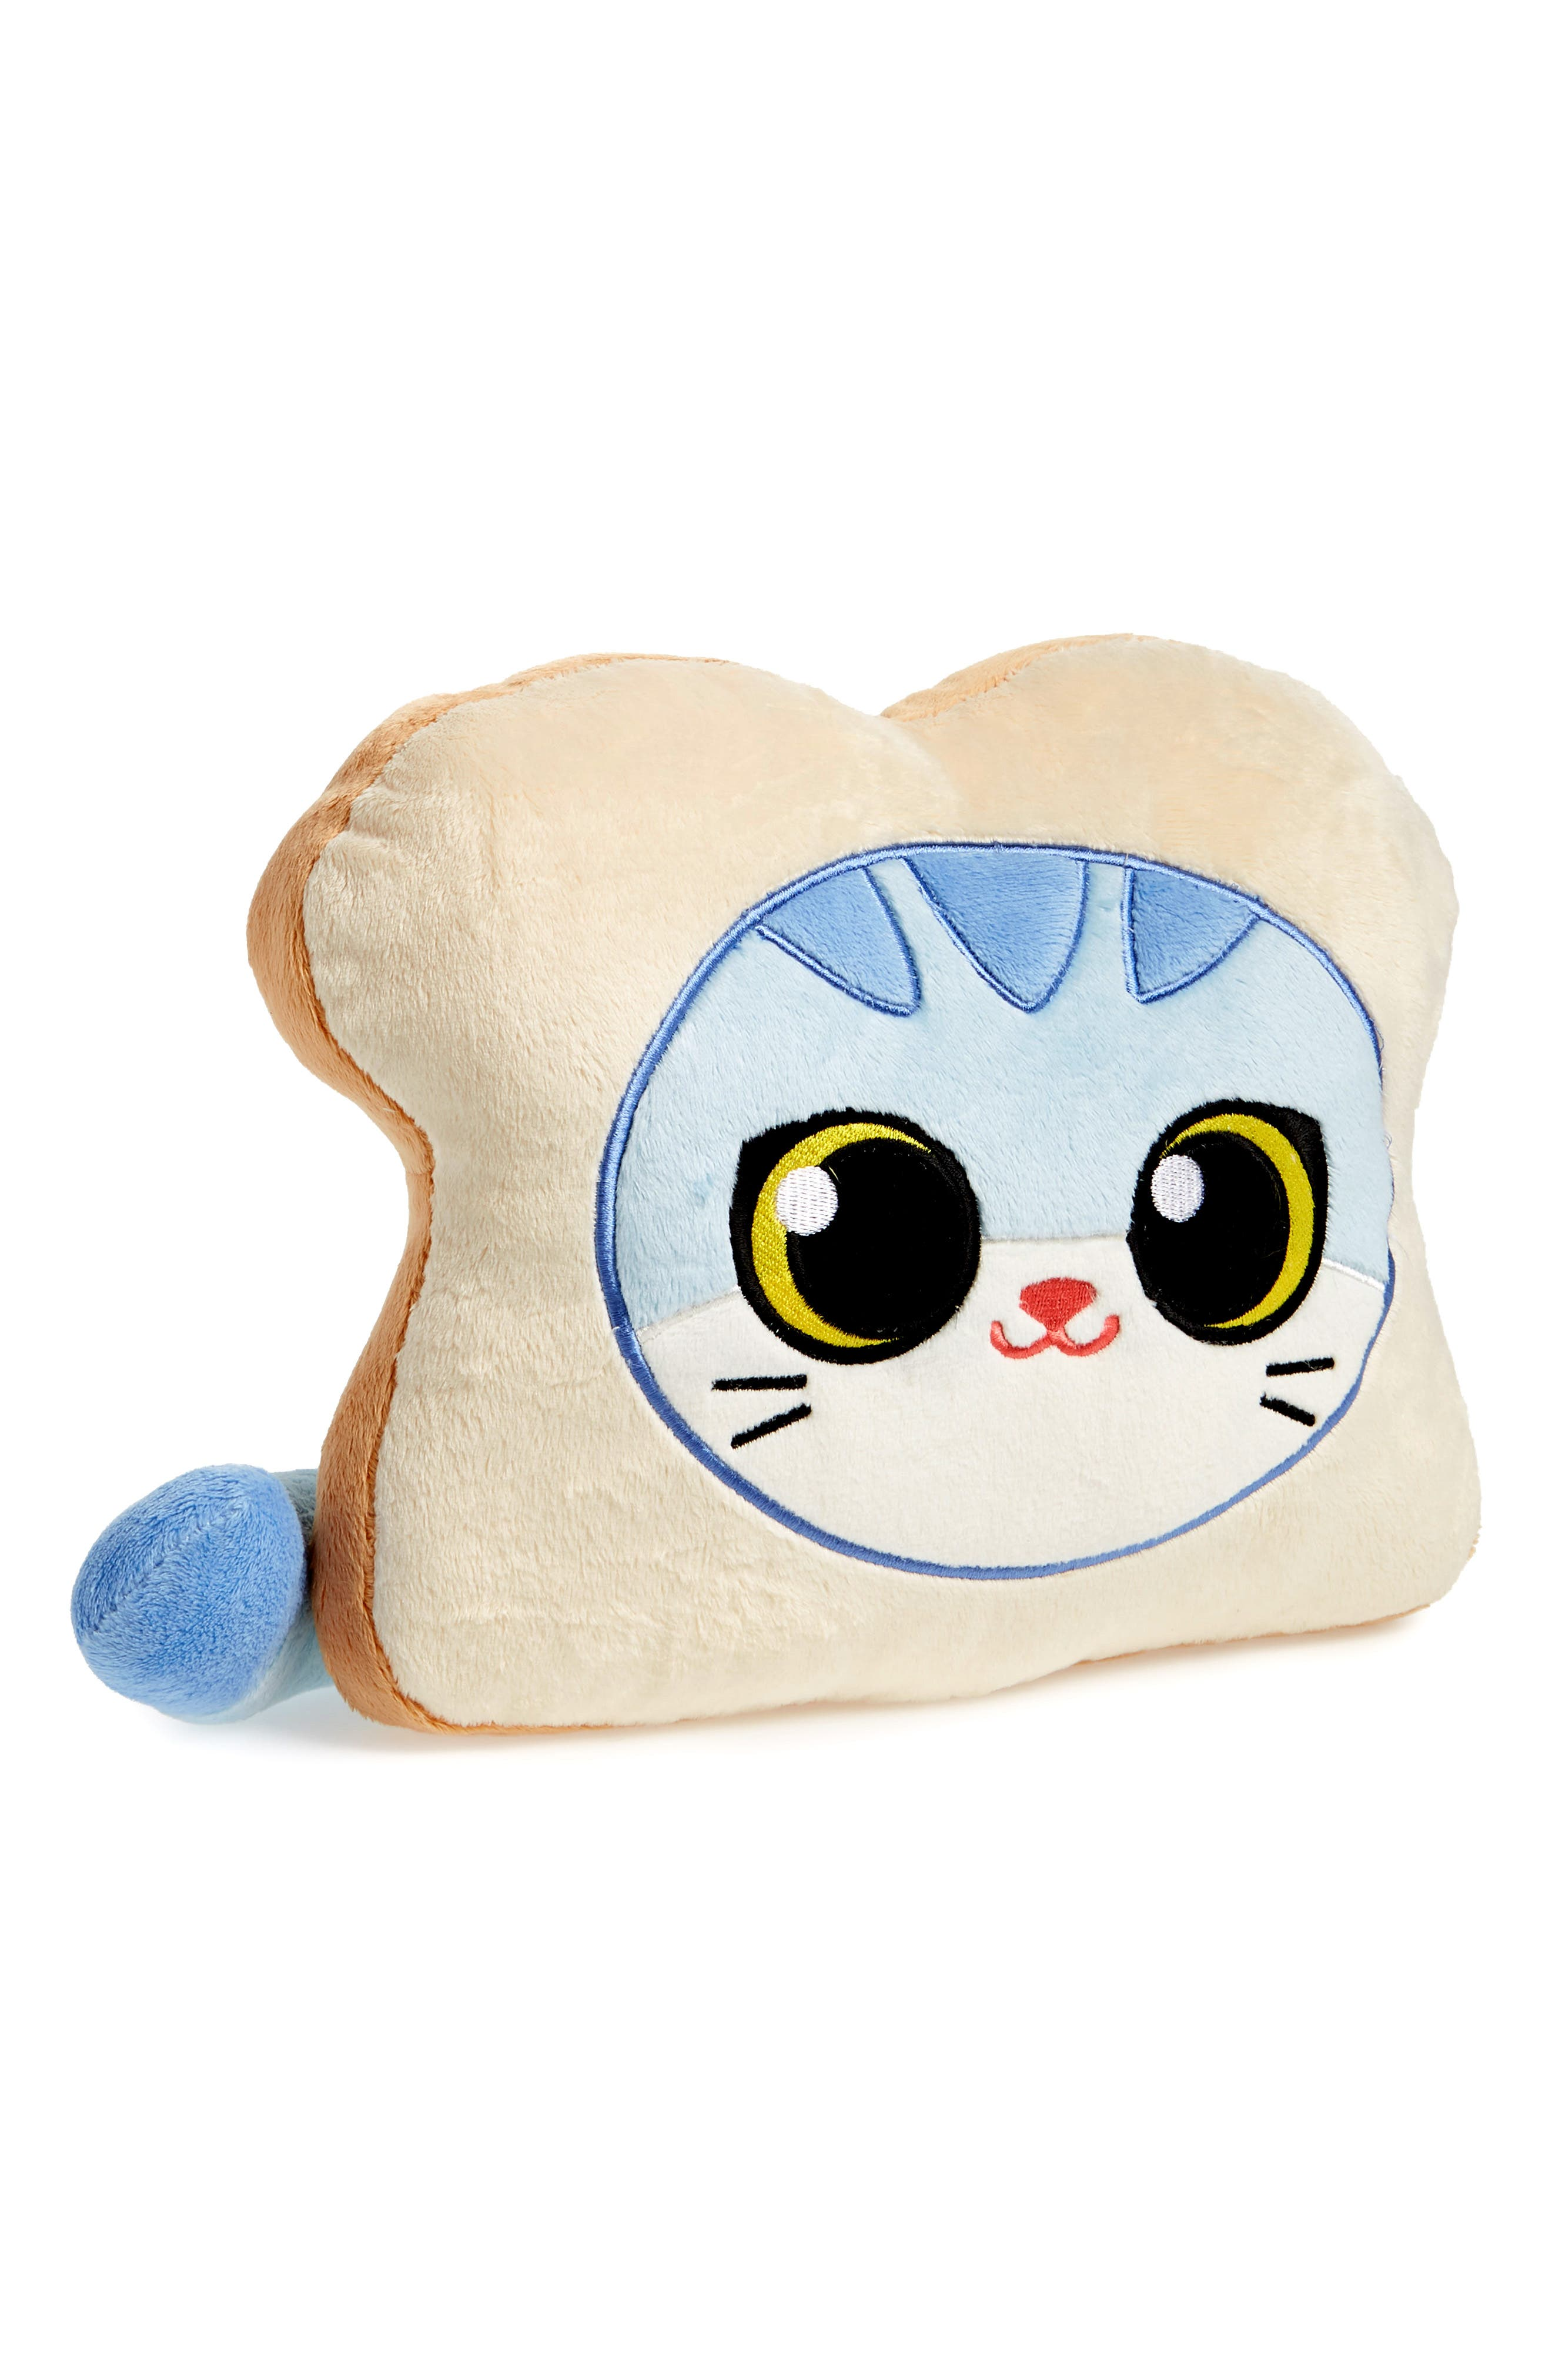 HASHTAG COLLECTIBLES Cat Bread Stuffed Pillow